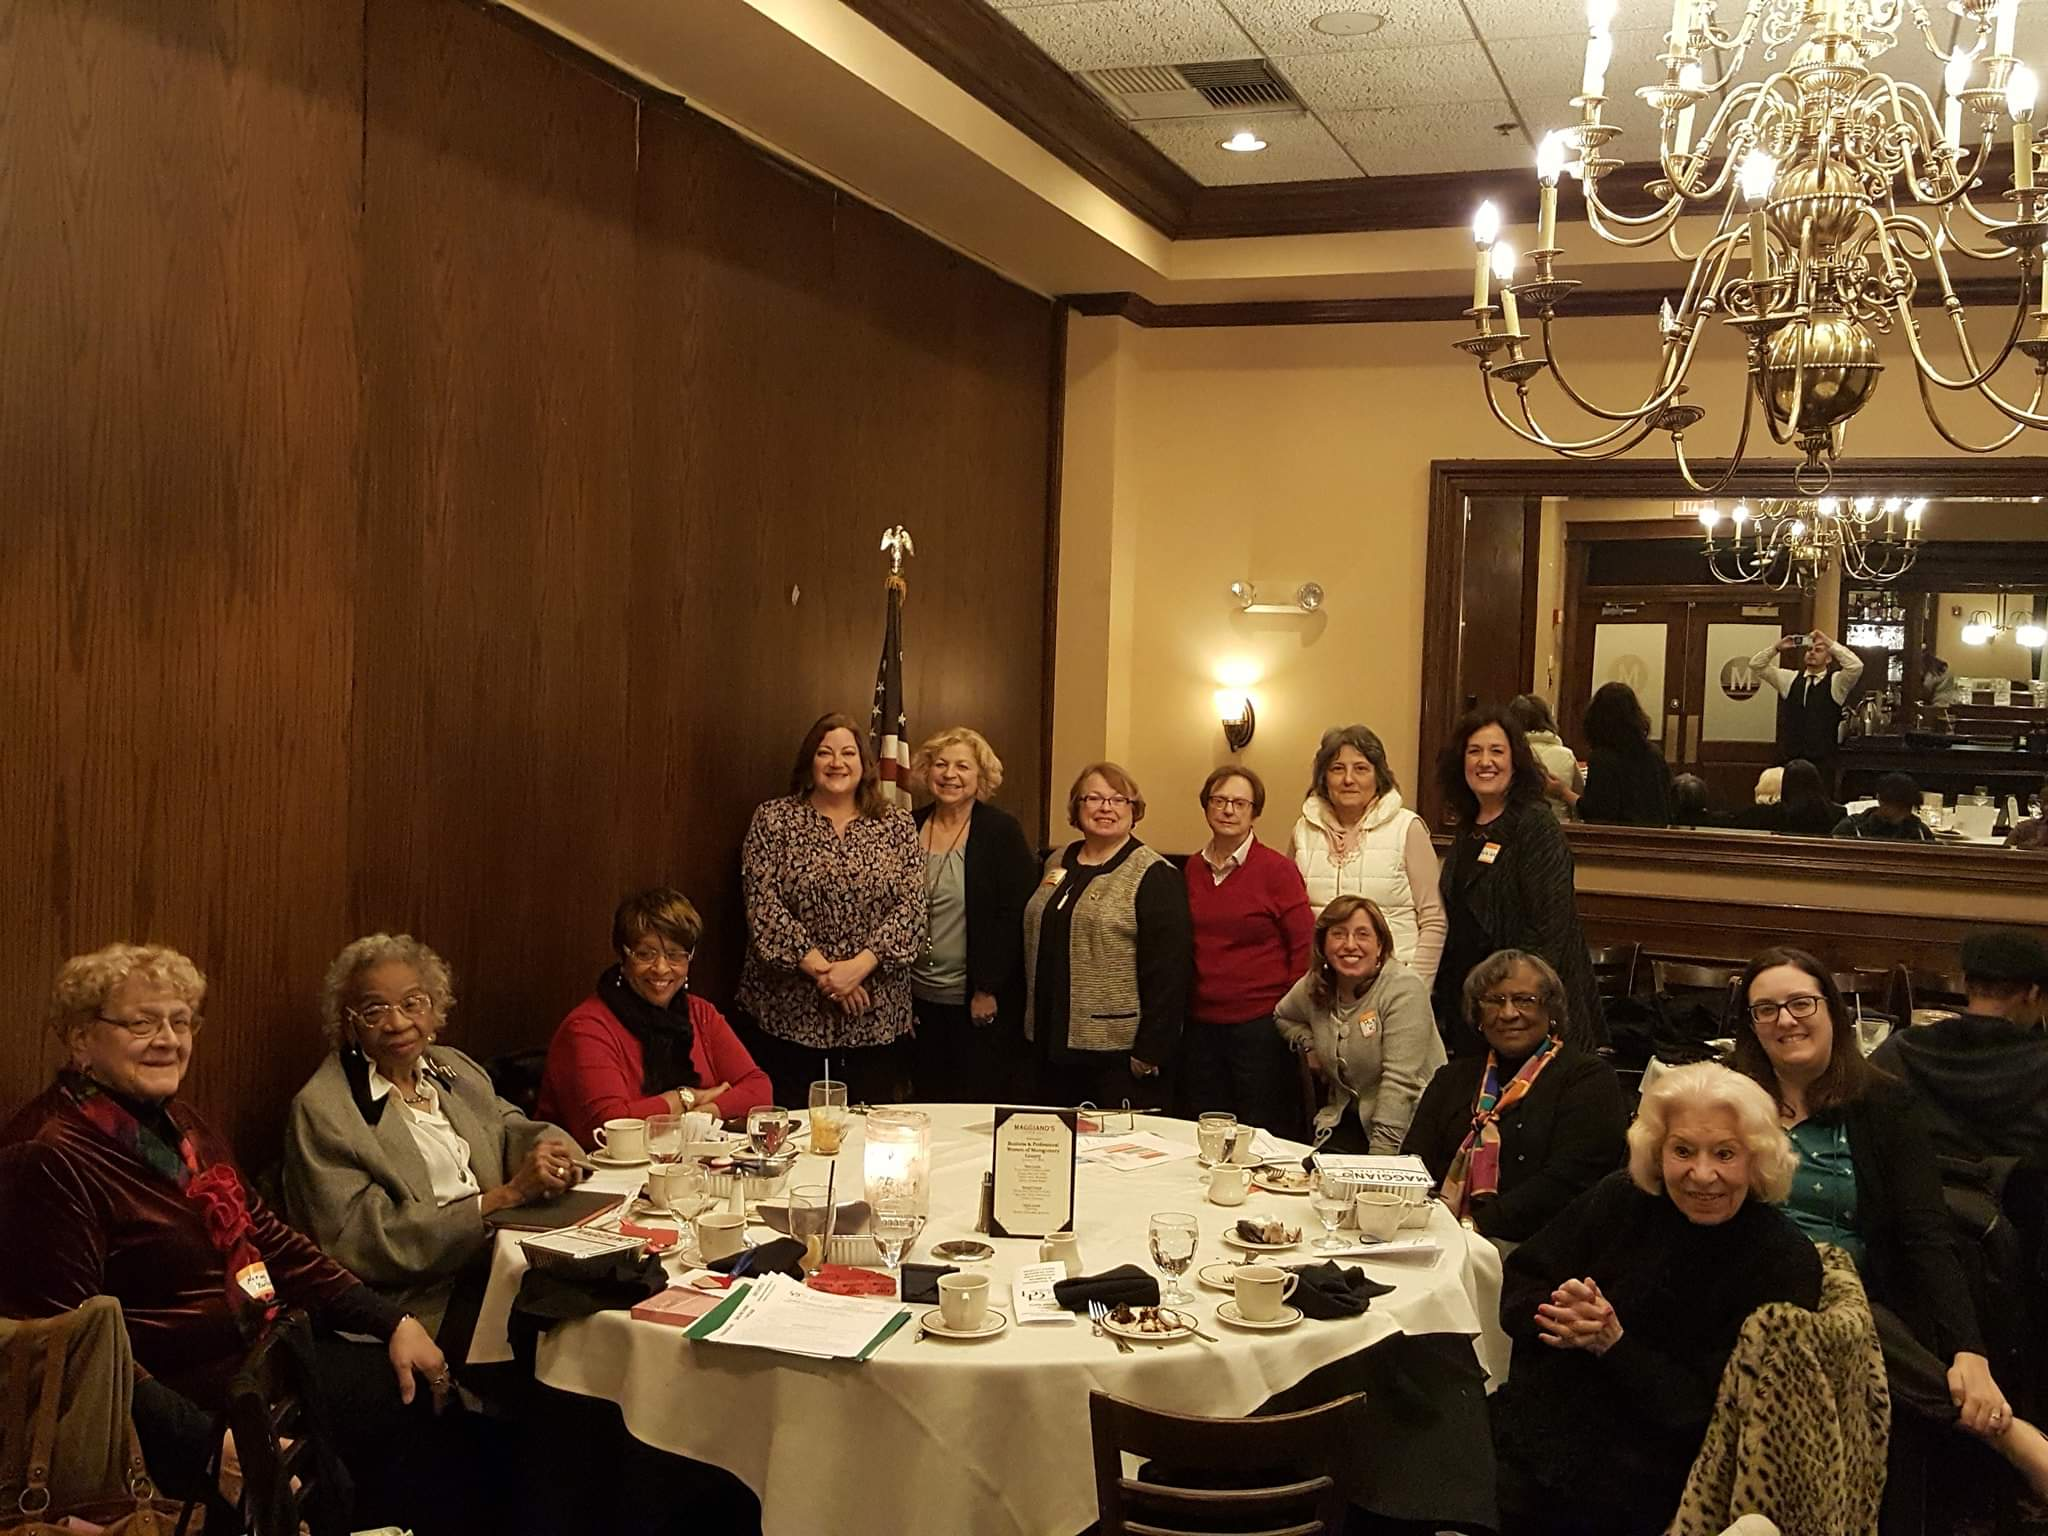 Central Montgomery County Business and Professional Women interpreted their state theme of passion and purpose with two speakers at their January meeting. ( standing from left) President Becky Shoulberg hosted Donna Cavanagh from Humor  Outcast.com  and Past BPW PA State President, Nancy Werner. BPW turns 100 years old this year and CMC was chartered in Norristown in 1927.